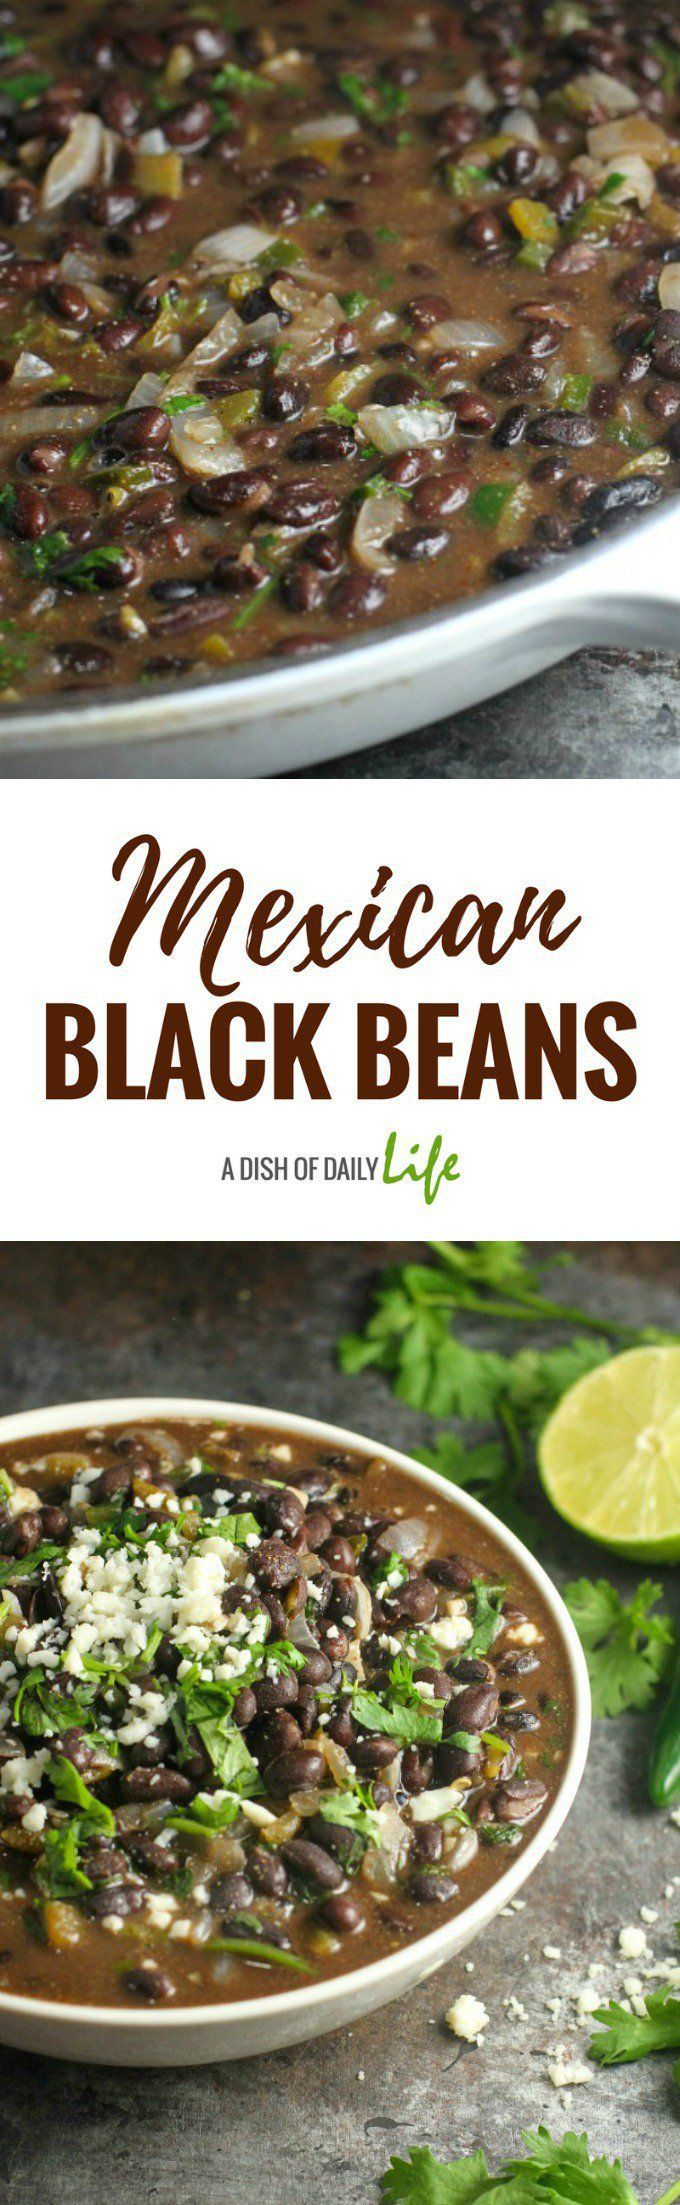 Easy and delicious, these restaurant quality Mexican black beans take almost no time to make! They're the perfect side dish for Mexican night! #Mexican #CincodeMayo #blackbeans